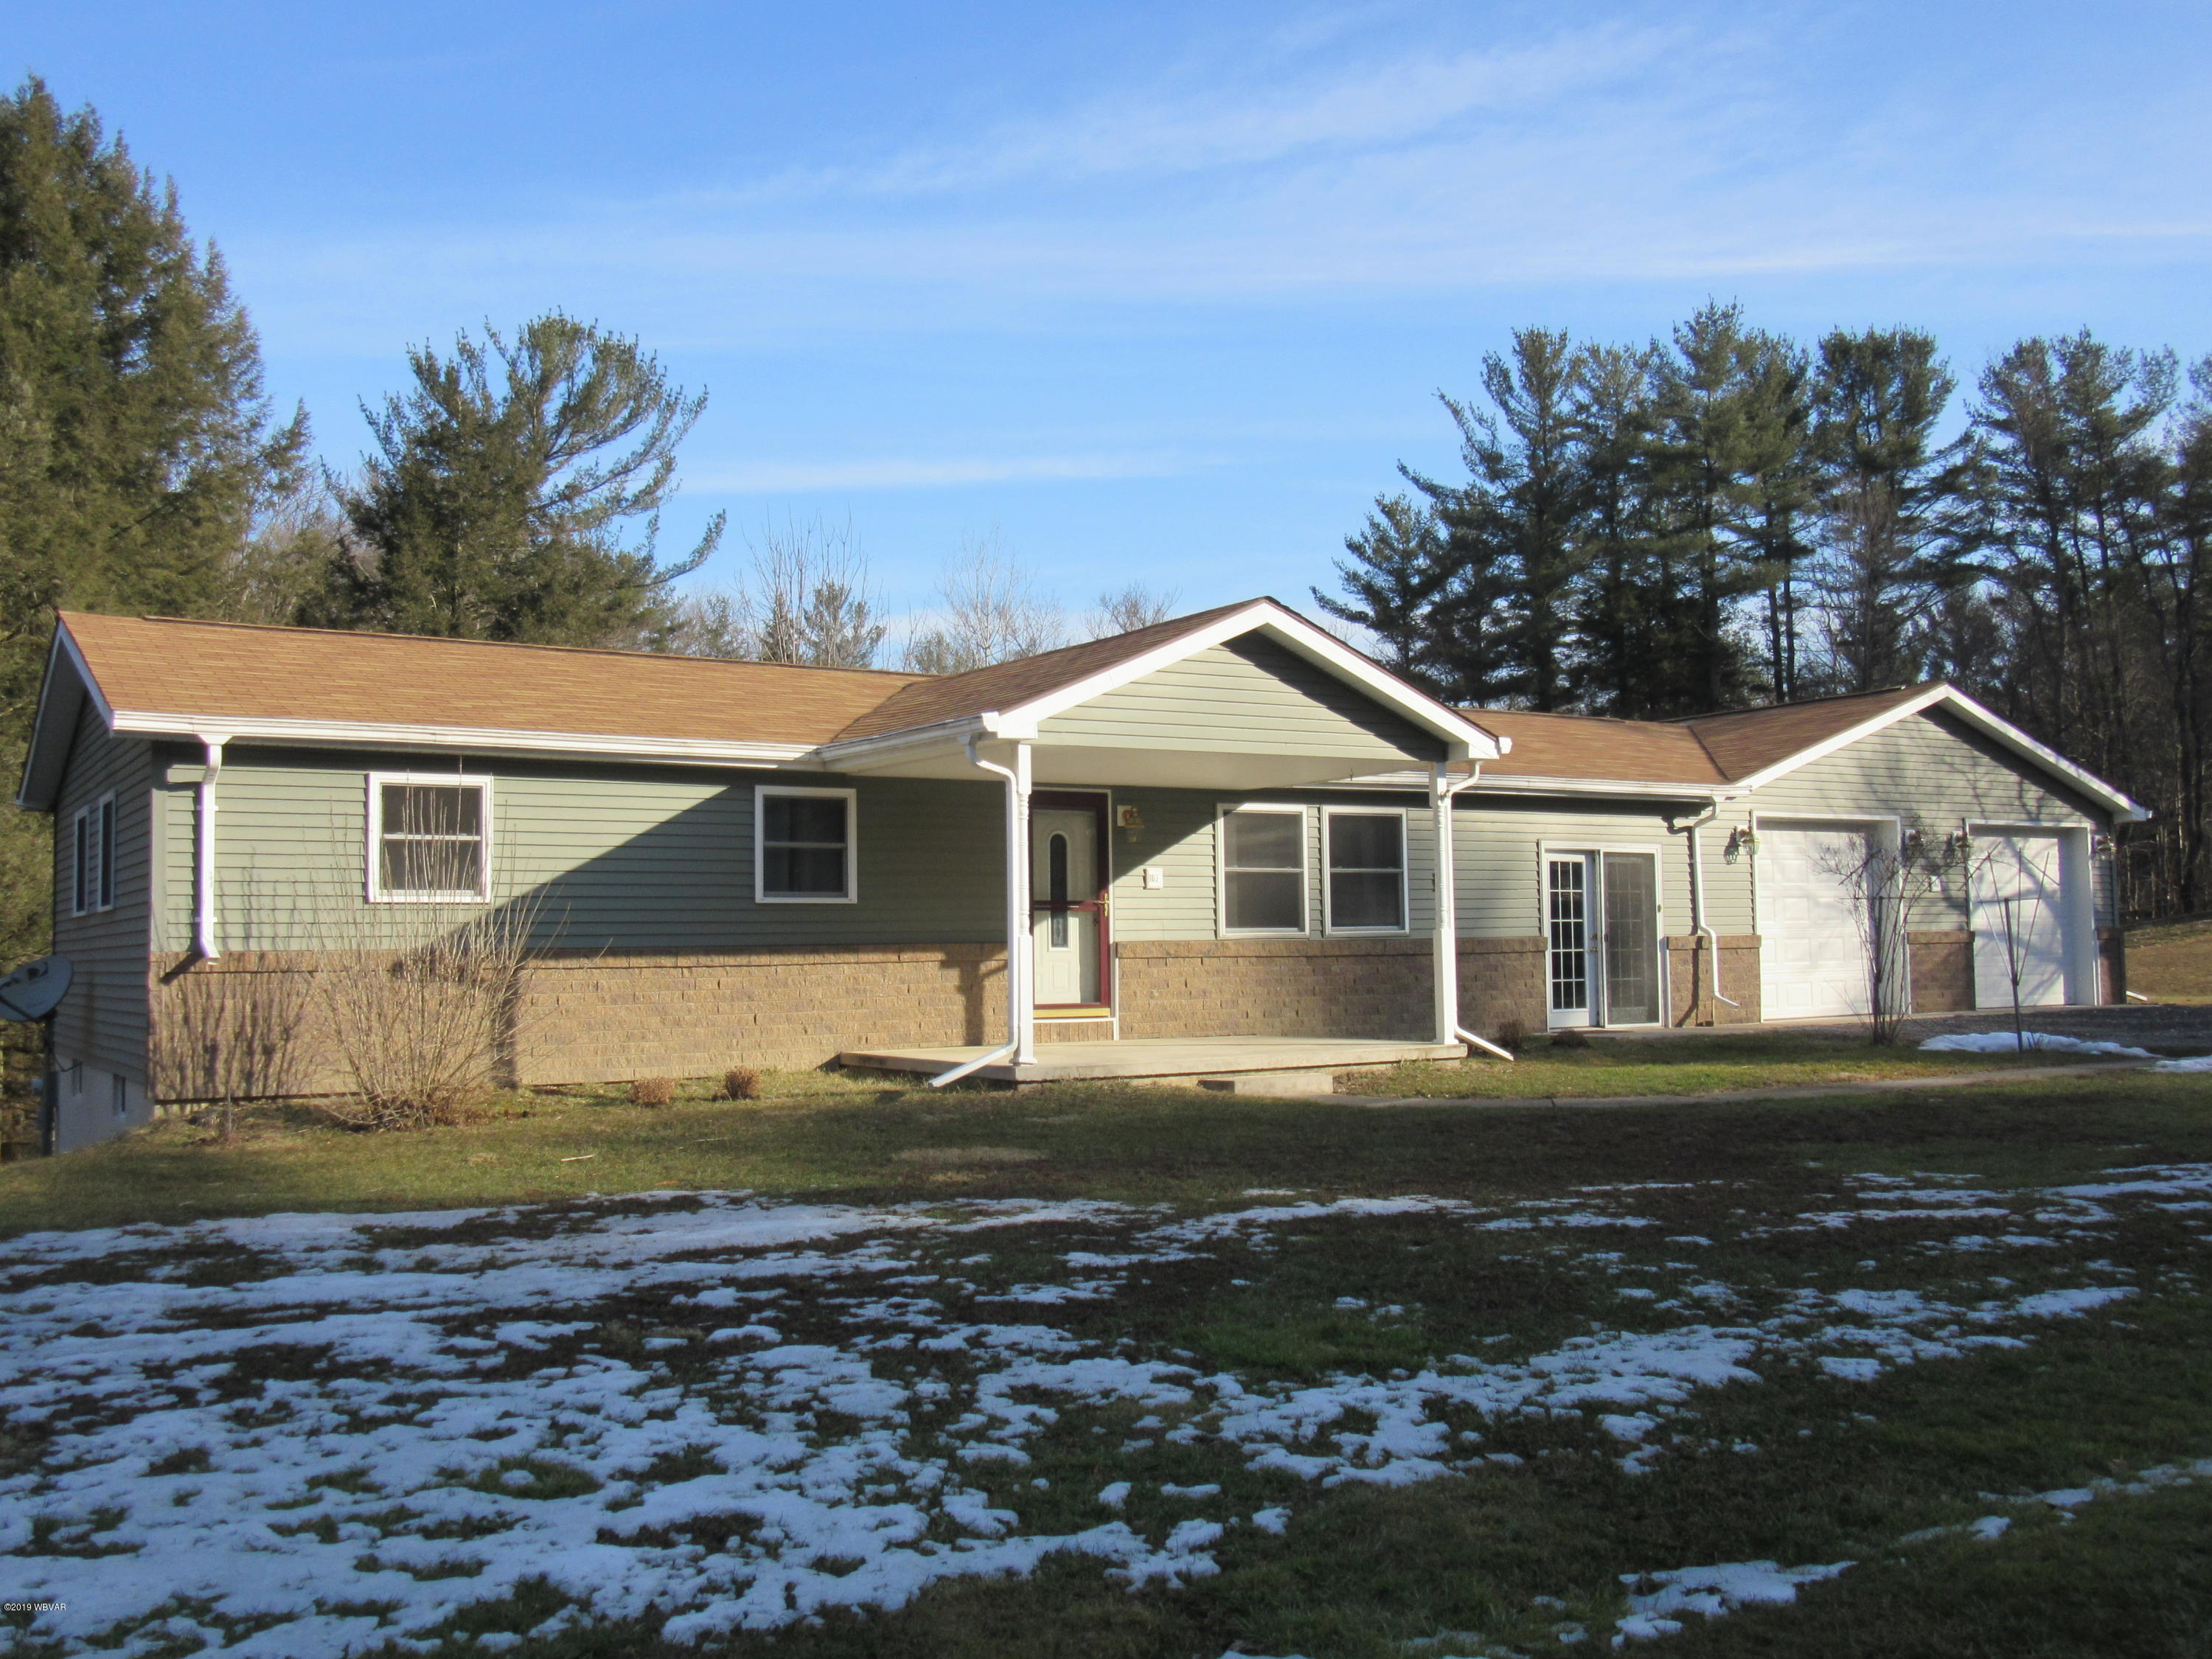 95 TOBACCO SHED ROAD,Lock Haven,PA 17745,3 Bedrooms Bedrooms,1.75 BathroomsBathrooms,Residential,TOBACCO SHED,WB-86653